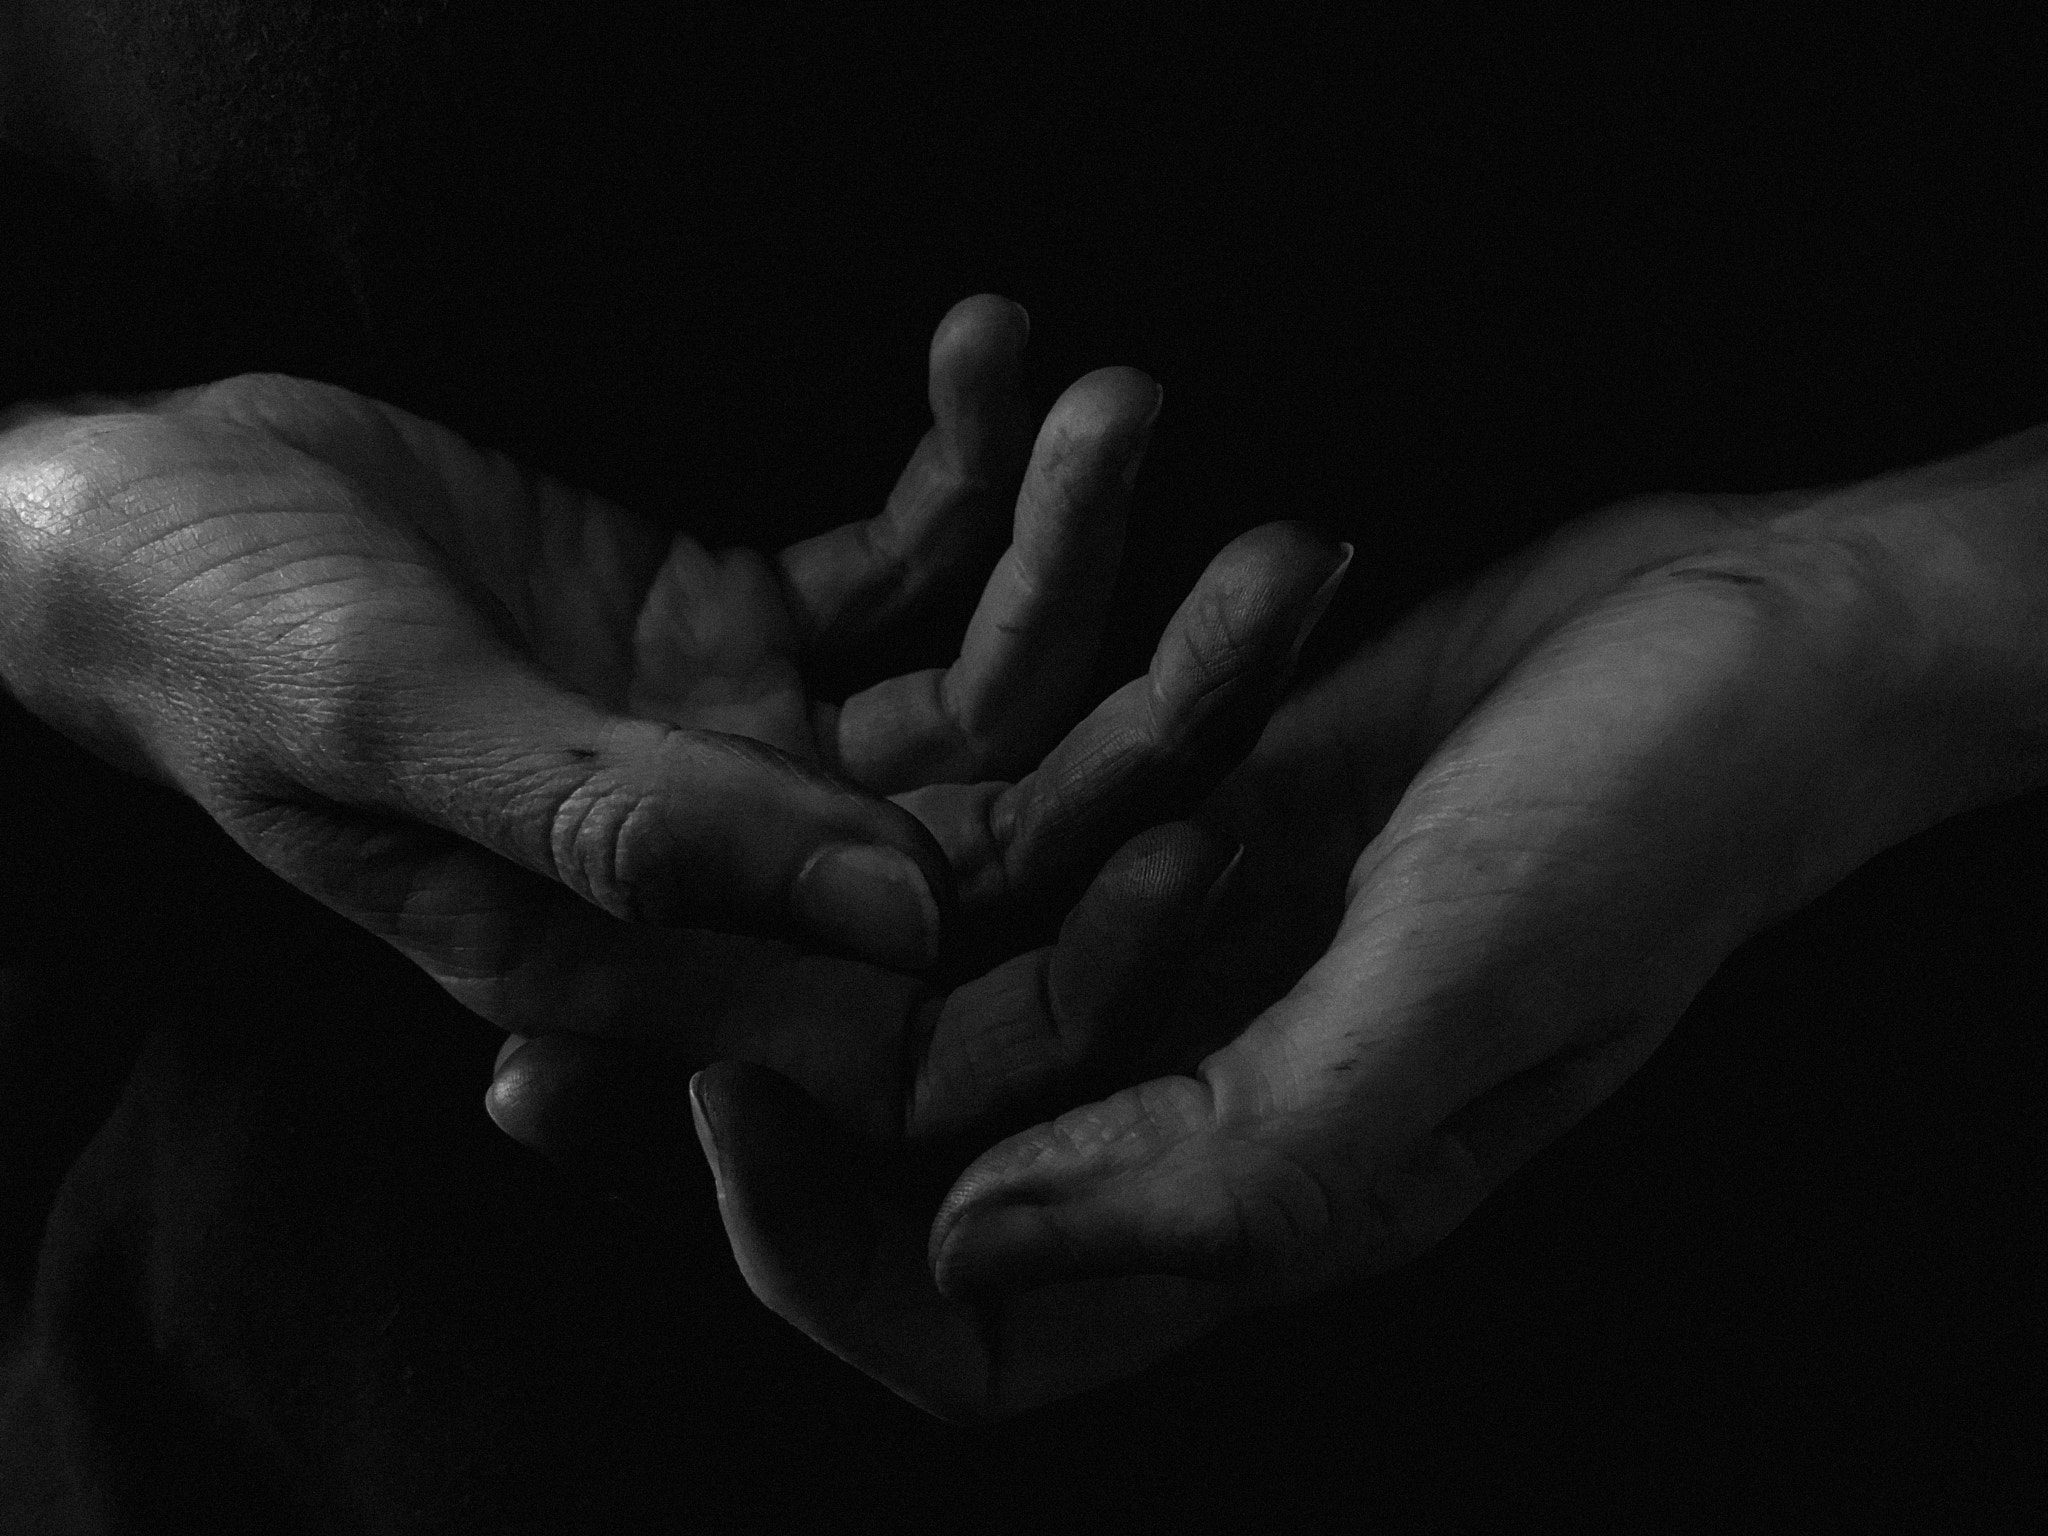 People 2048x1536 people monochrome dark hands 500px Agnes Haus